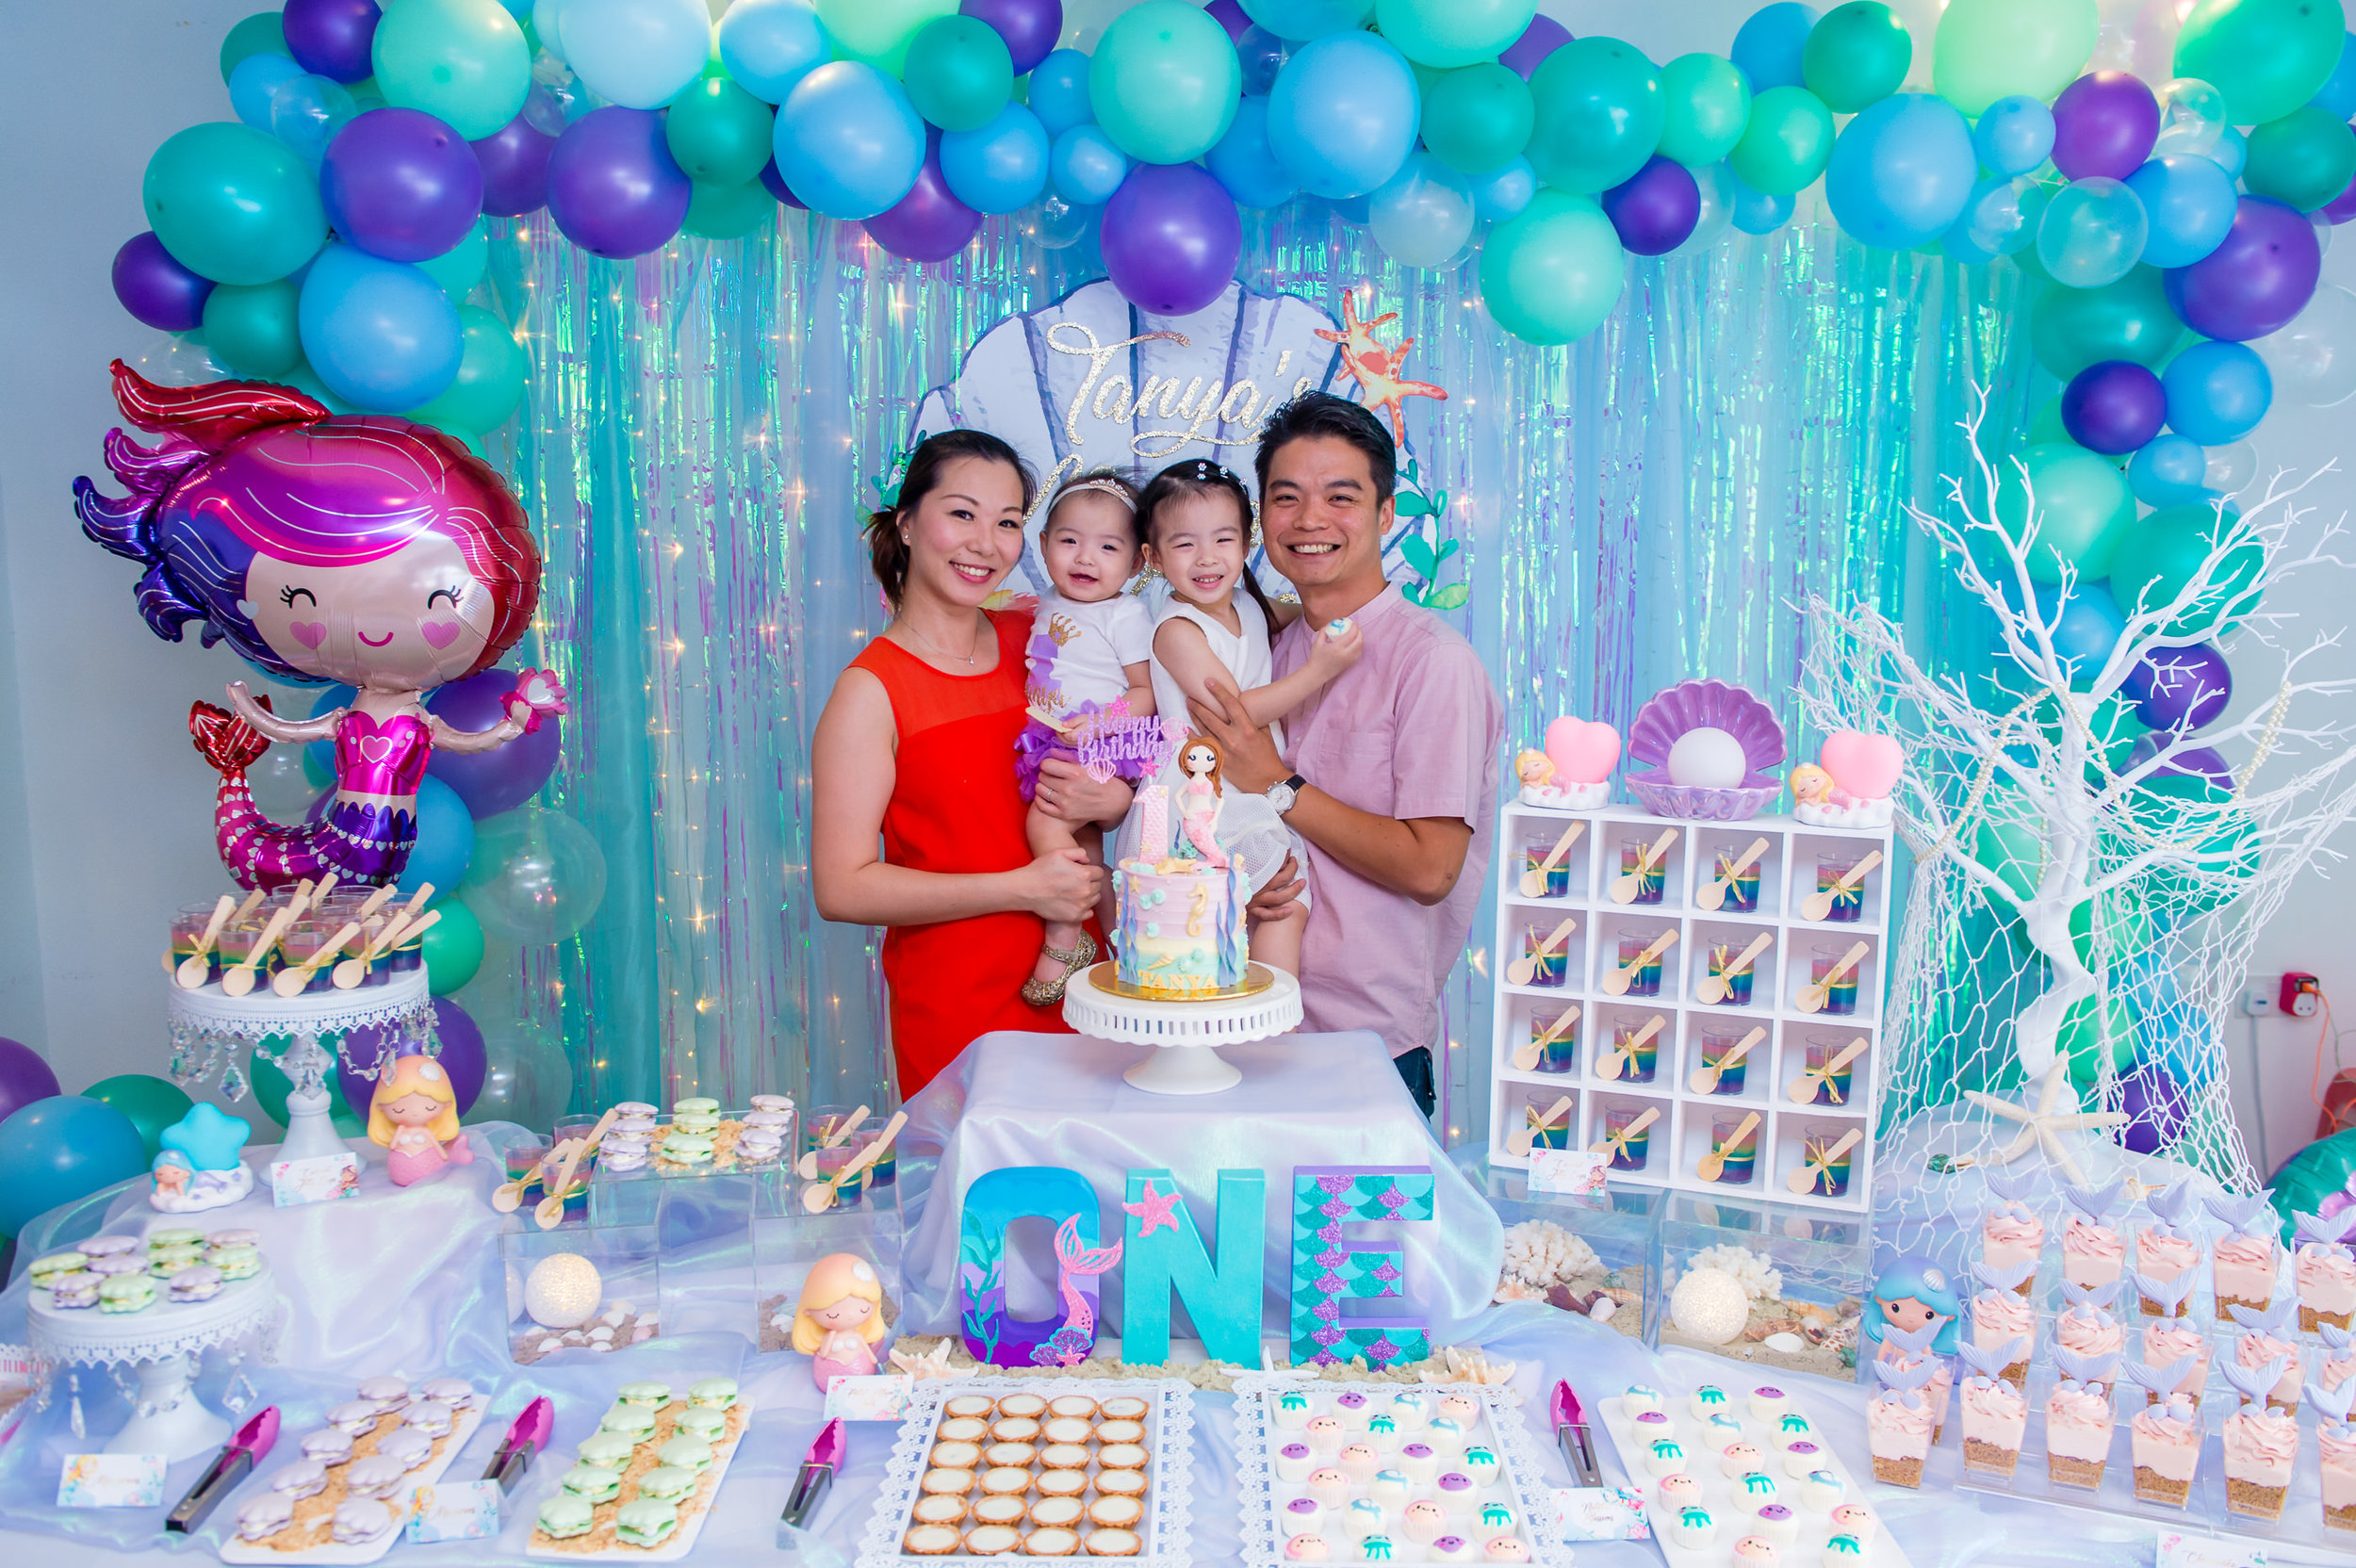 #birthday #party #celebration #photographersg #partyphotographer #eventphotographer #party2019 #birthday2019 #partyphotographer #SGPhotographer #igsg #throwback #nikonphotographer #kid #kids #kidsparty #celebrate #happybirthday #partyplanner #partyideas #catchmyparty #sgmum #sgfamily #sgbirthday #sgparty #sgkid